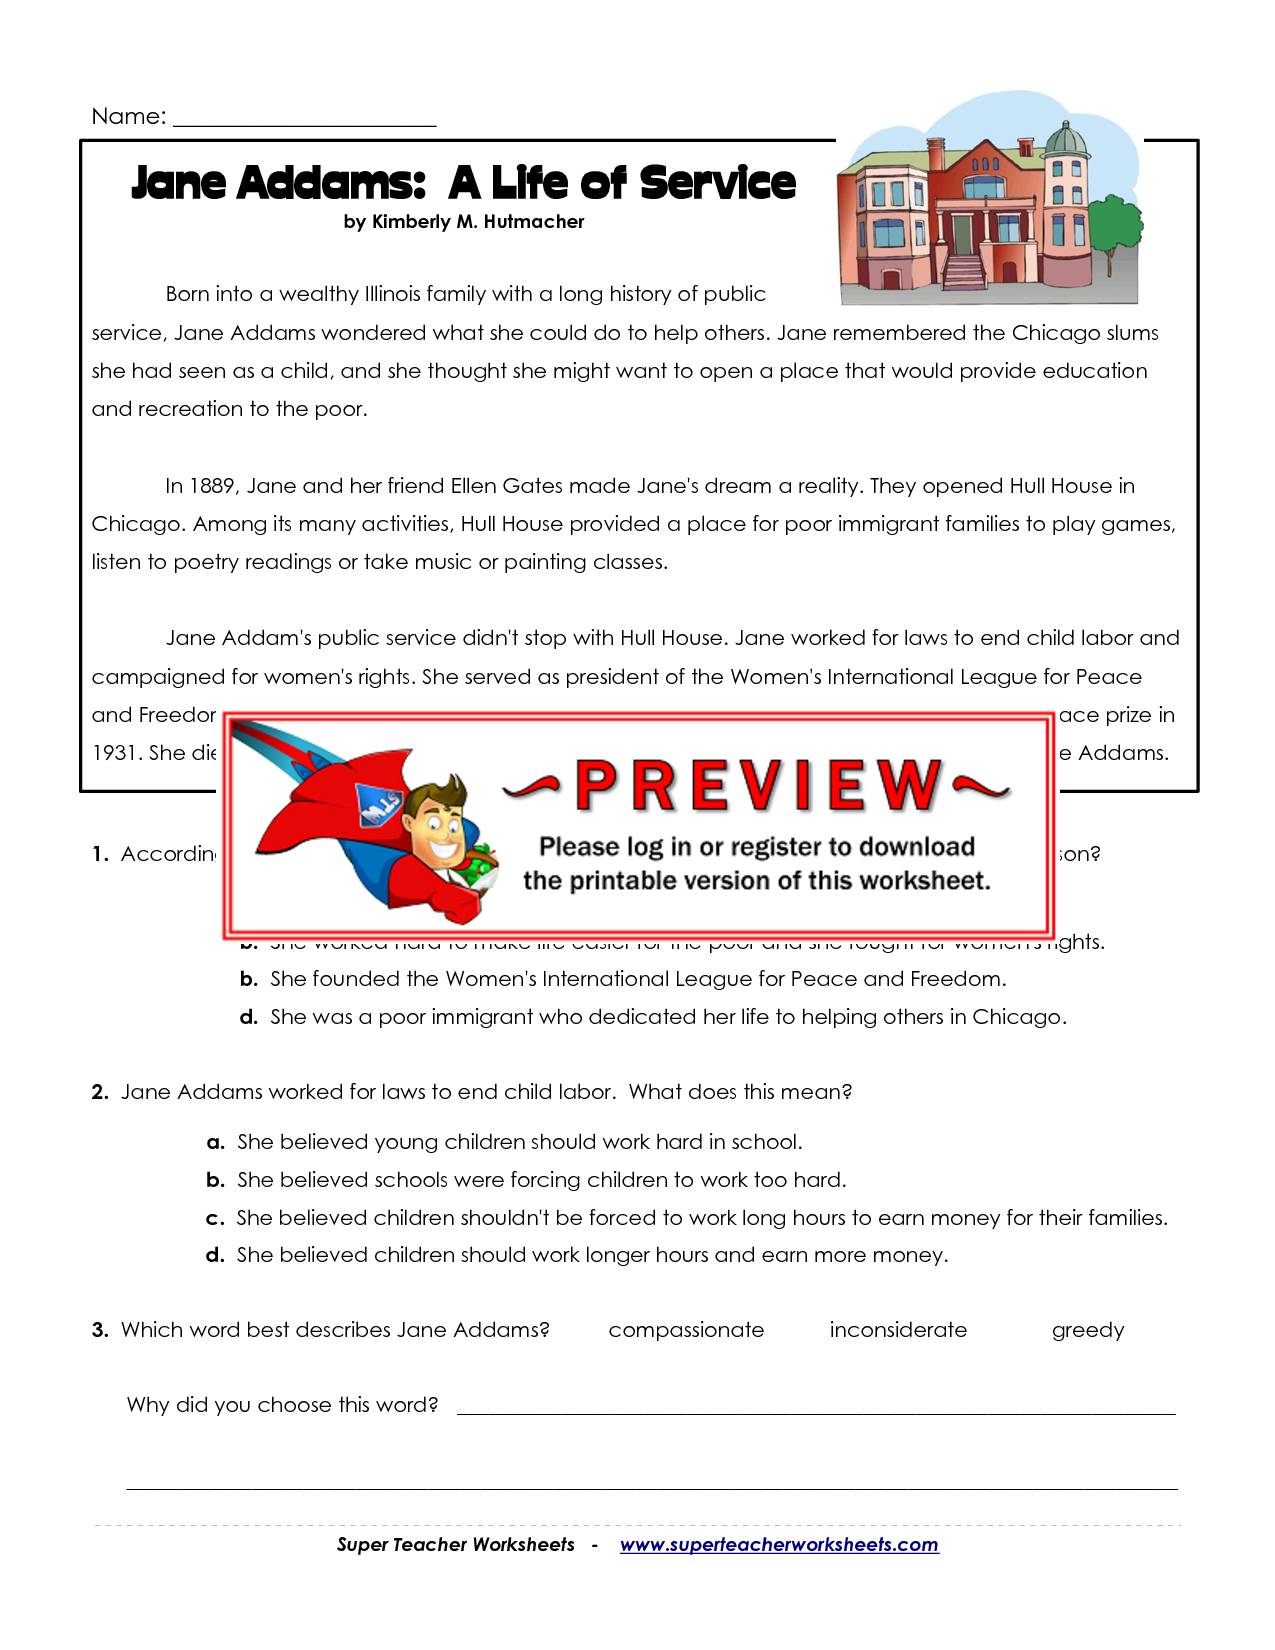 medium resolution of Jane Addams A Life of Service - Super Teacher Worksheets   Super teacher  worksheets